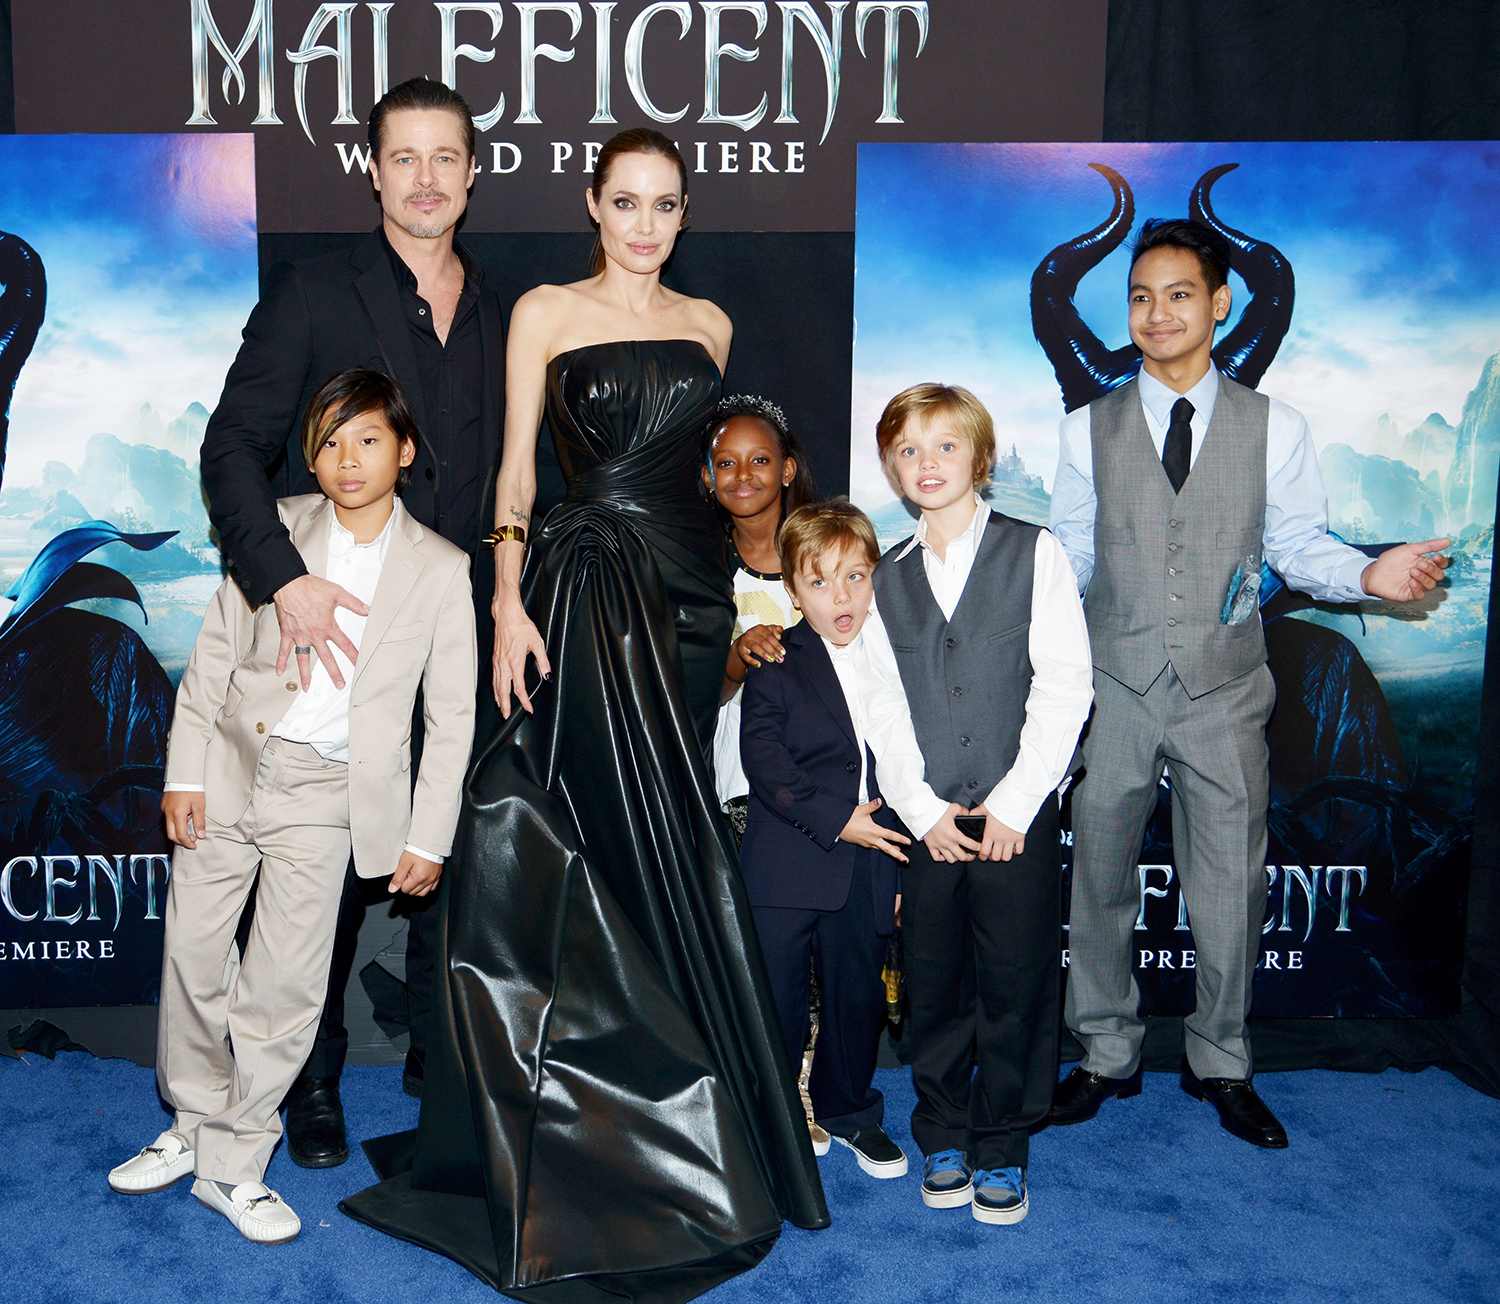 Brad Pitt and Angelina Jolie with children (from left) Pax, Zahara, Knox, Shiloh and Maddox